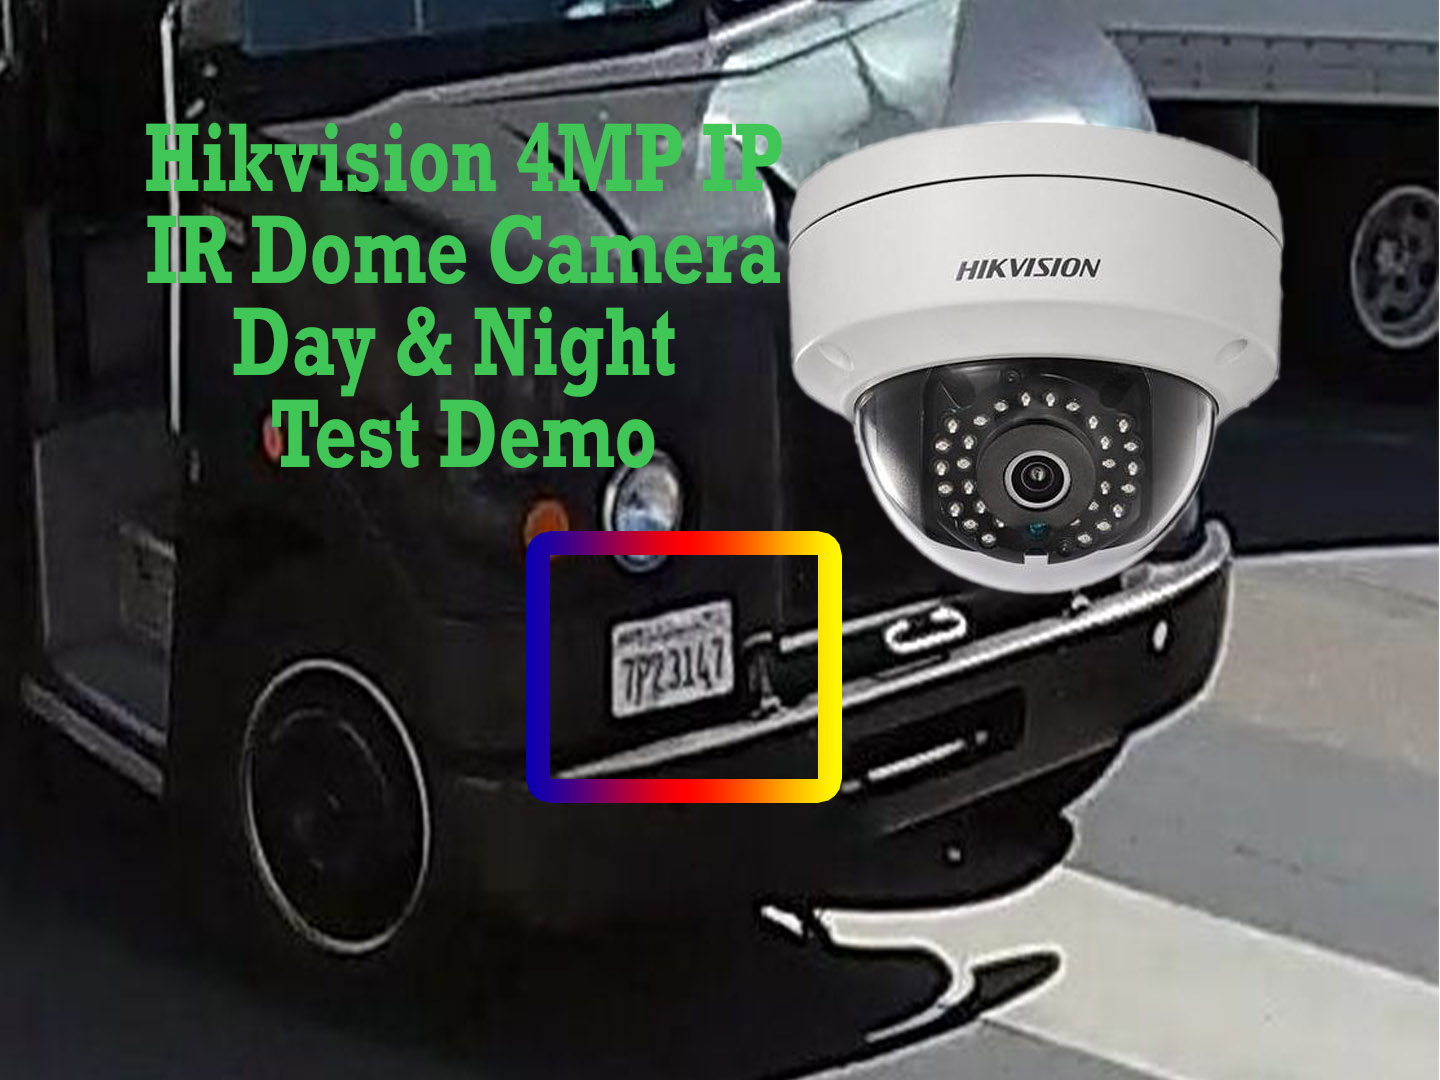 Hikvision IP CCTV Demo | Halcyon CCTV Experts - San Diego